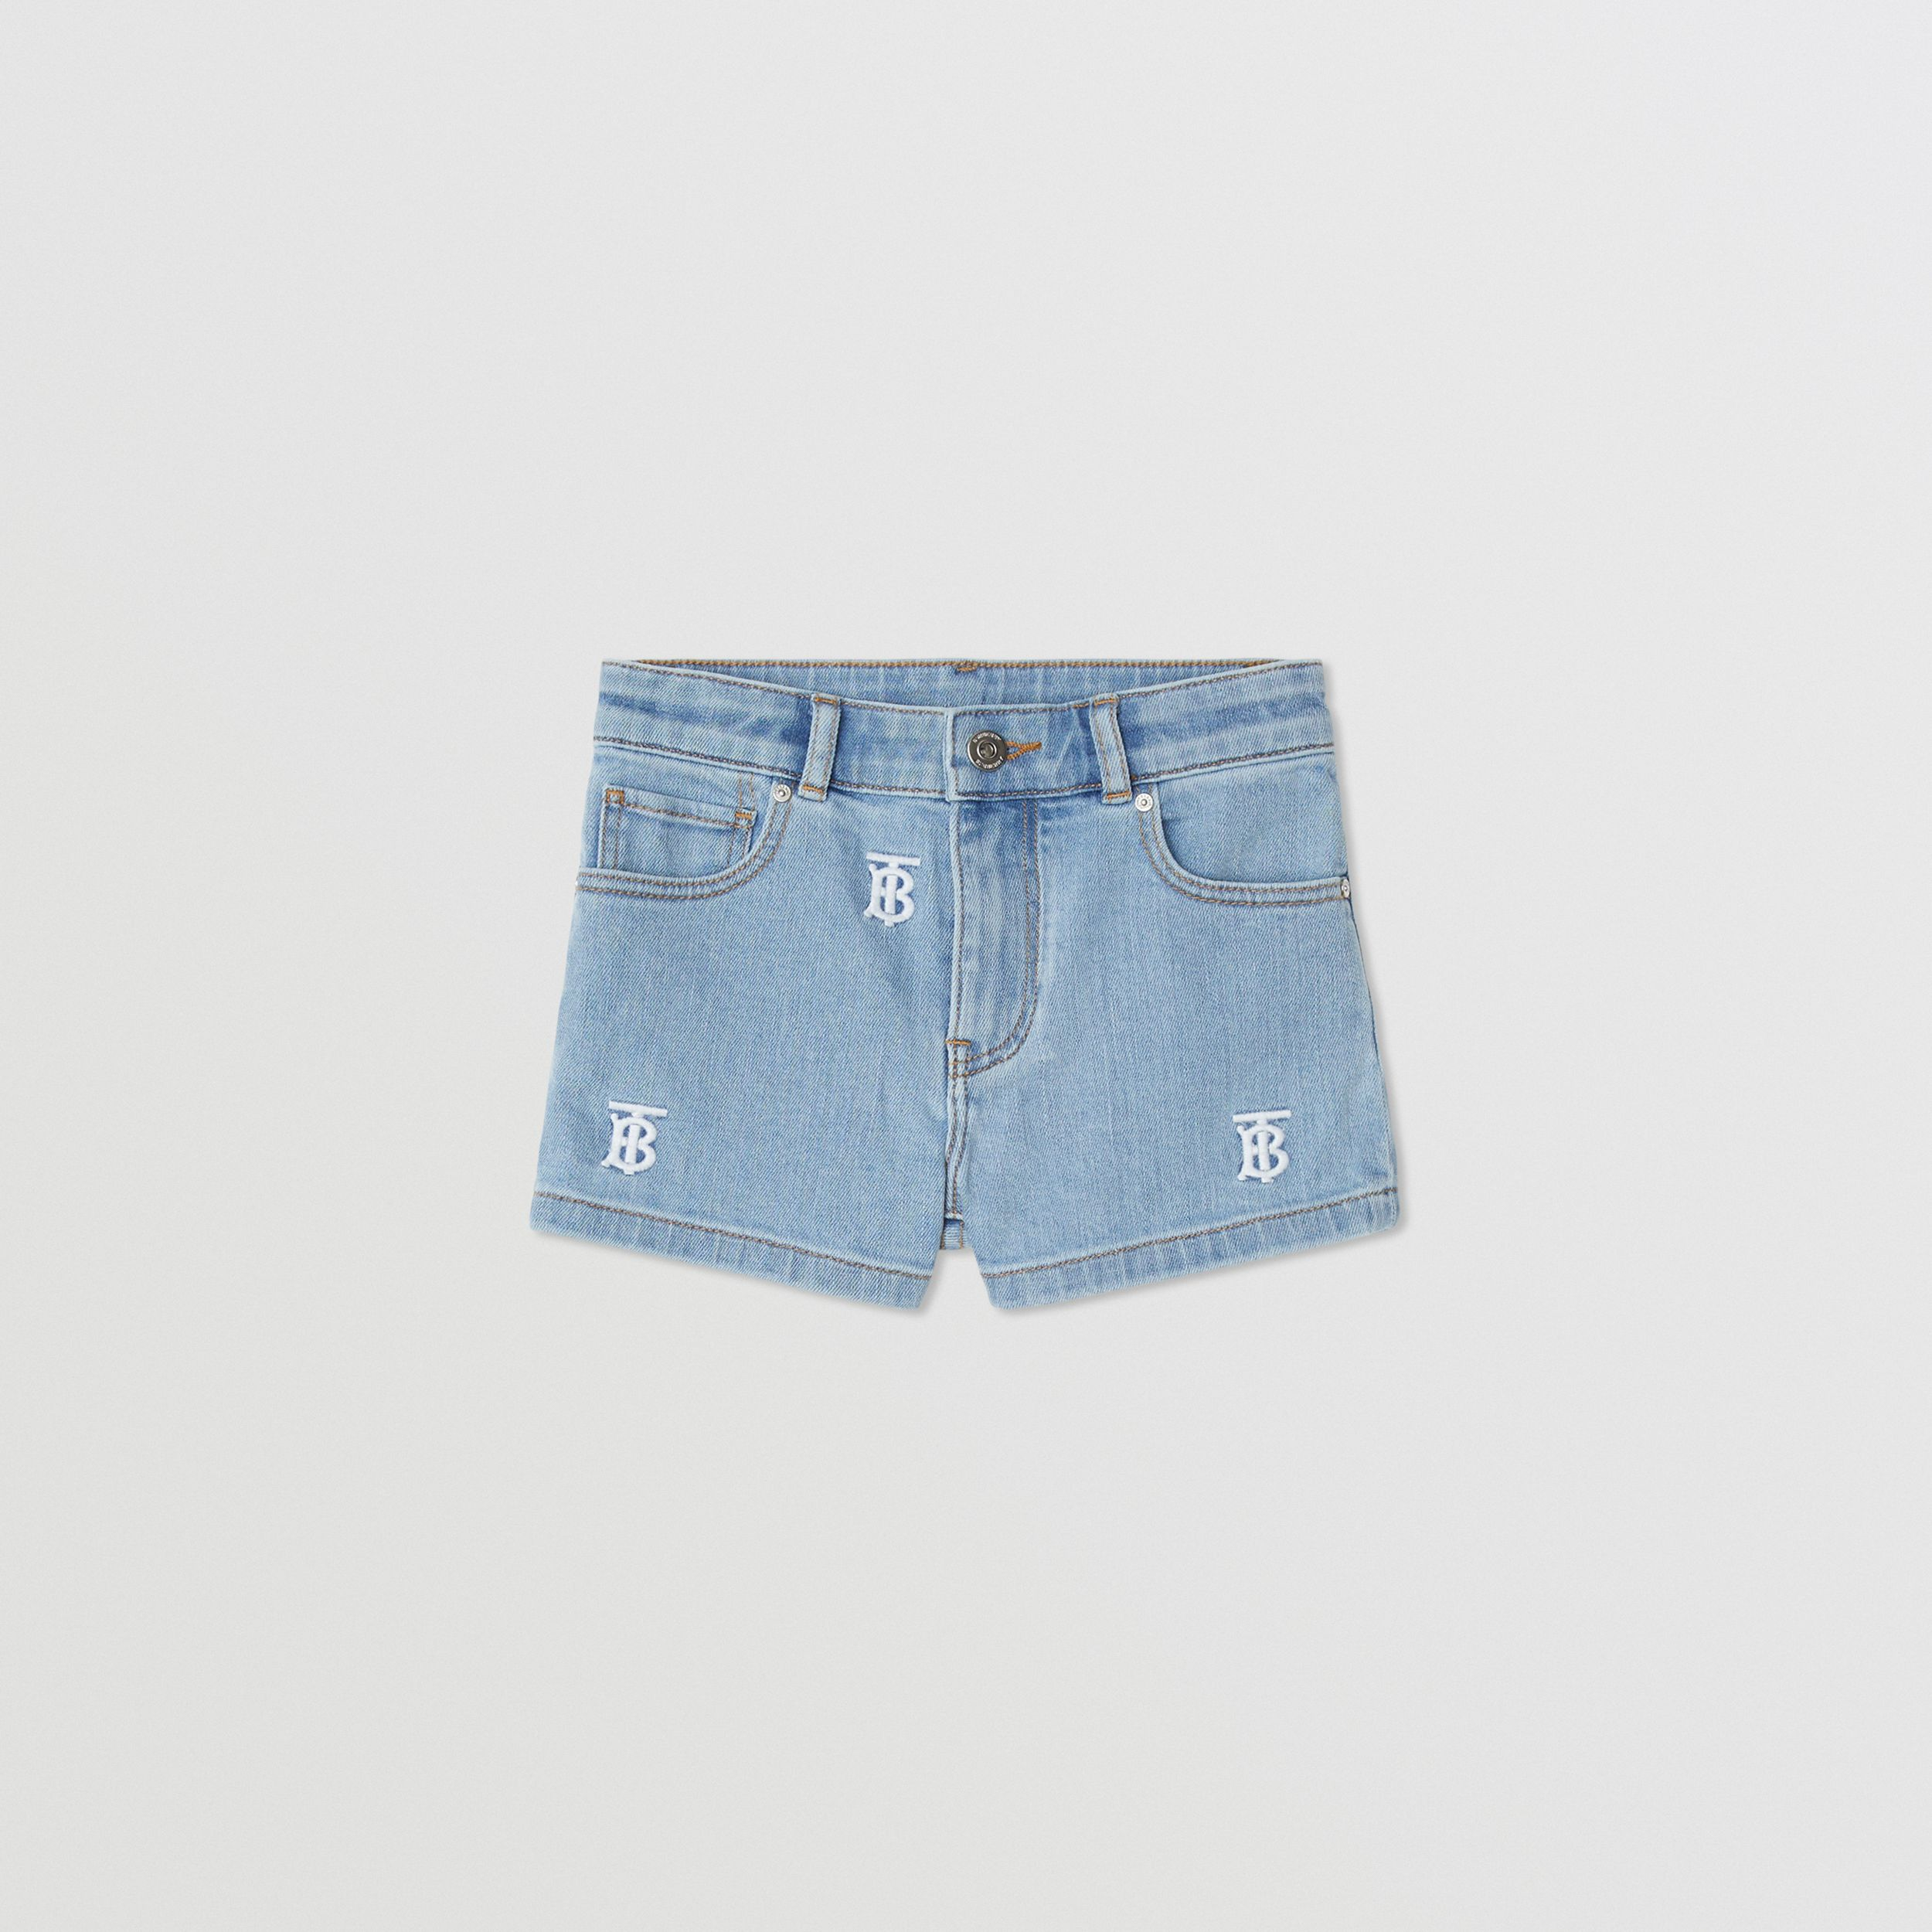 Monogram Motif Stretch Denim Shorts in Pale Blue | Burberry - 1